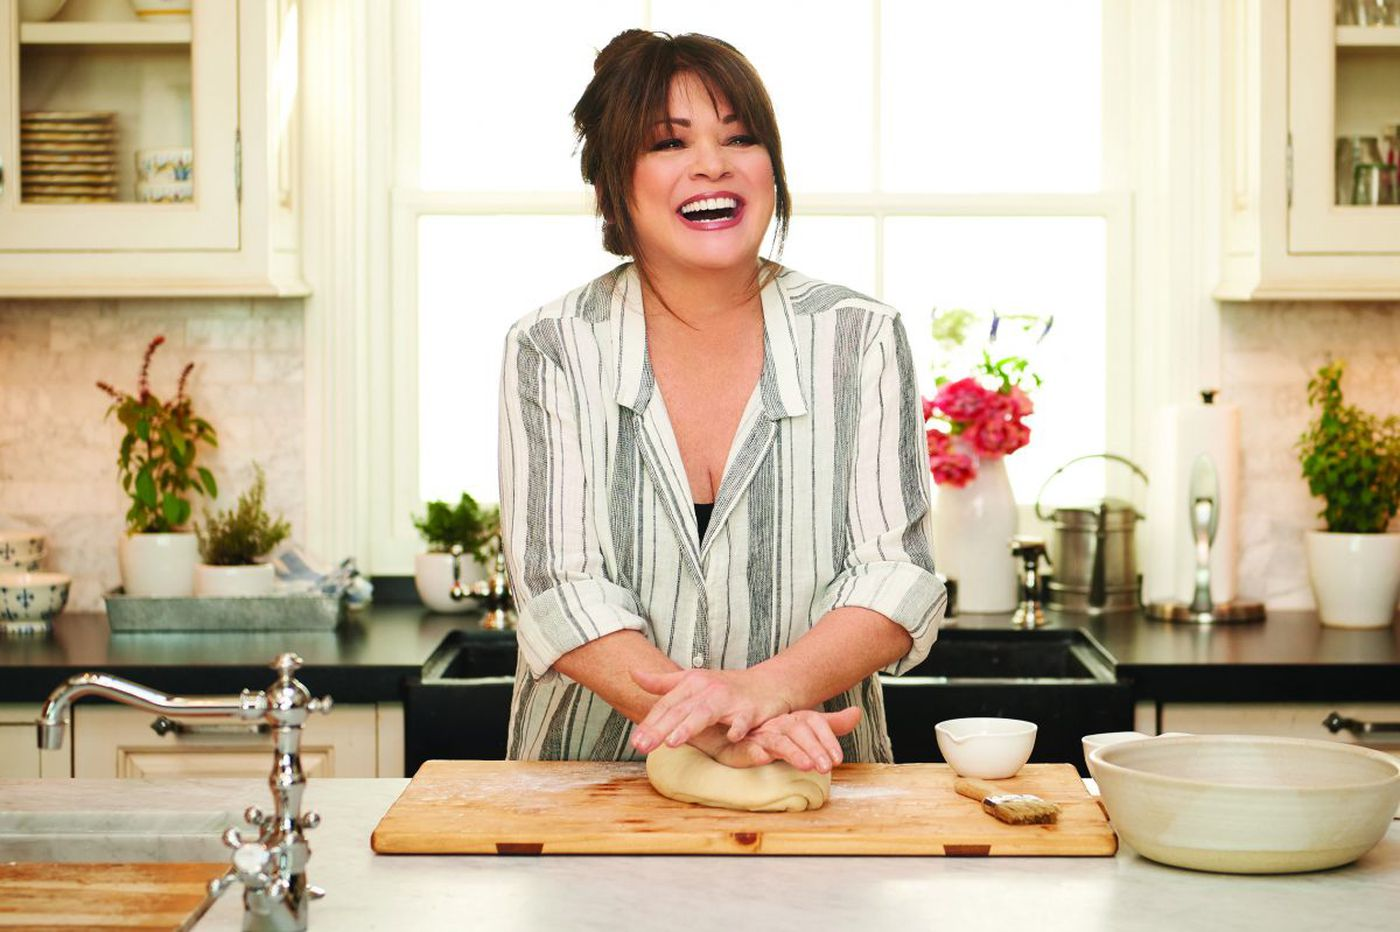 Valerie Bertinelli, once a teen TV sweetheart, cooking up something new at 57